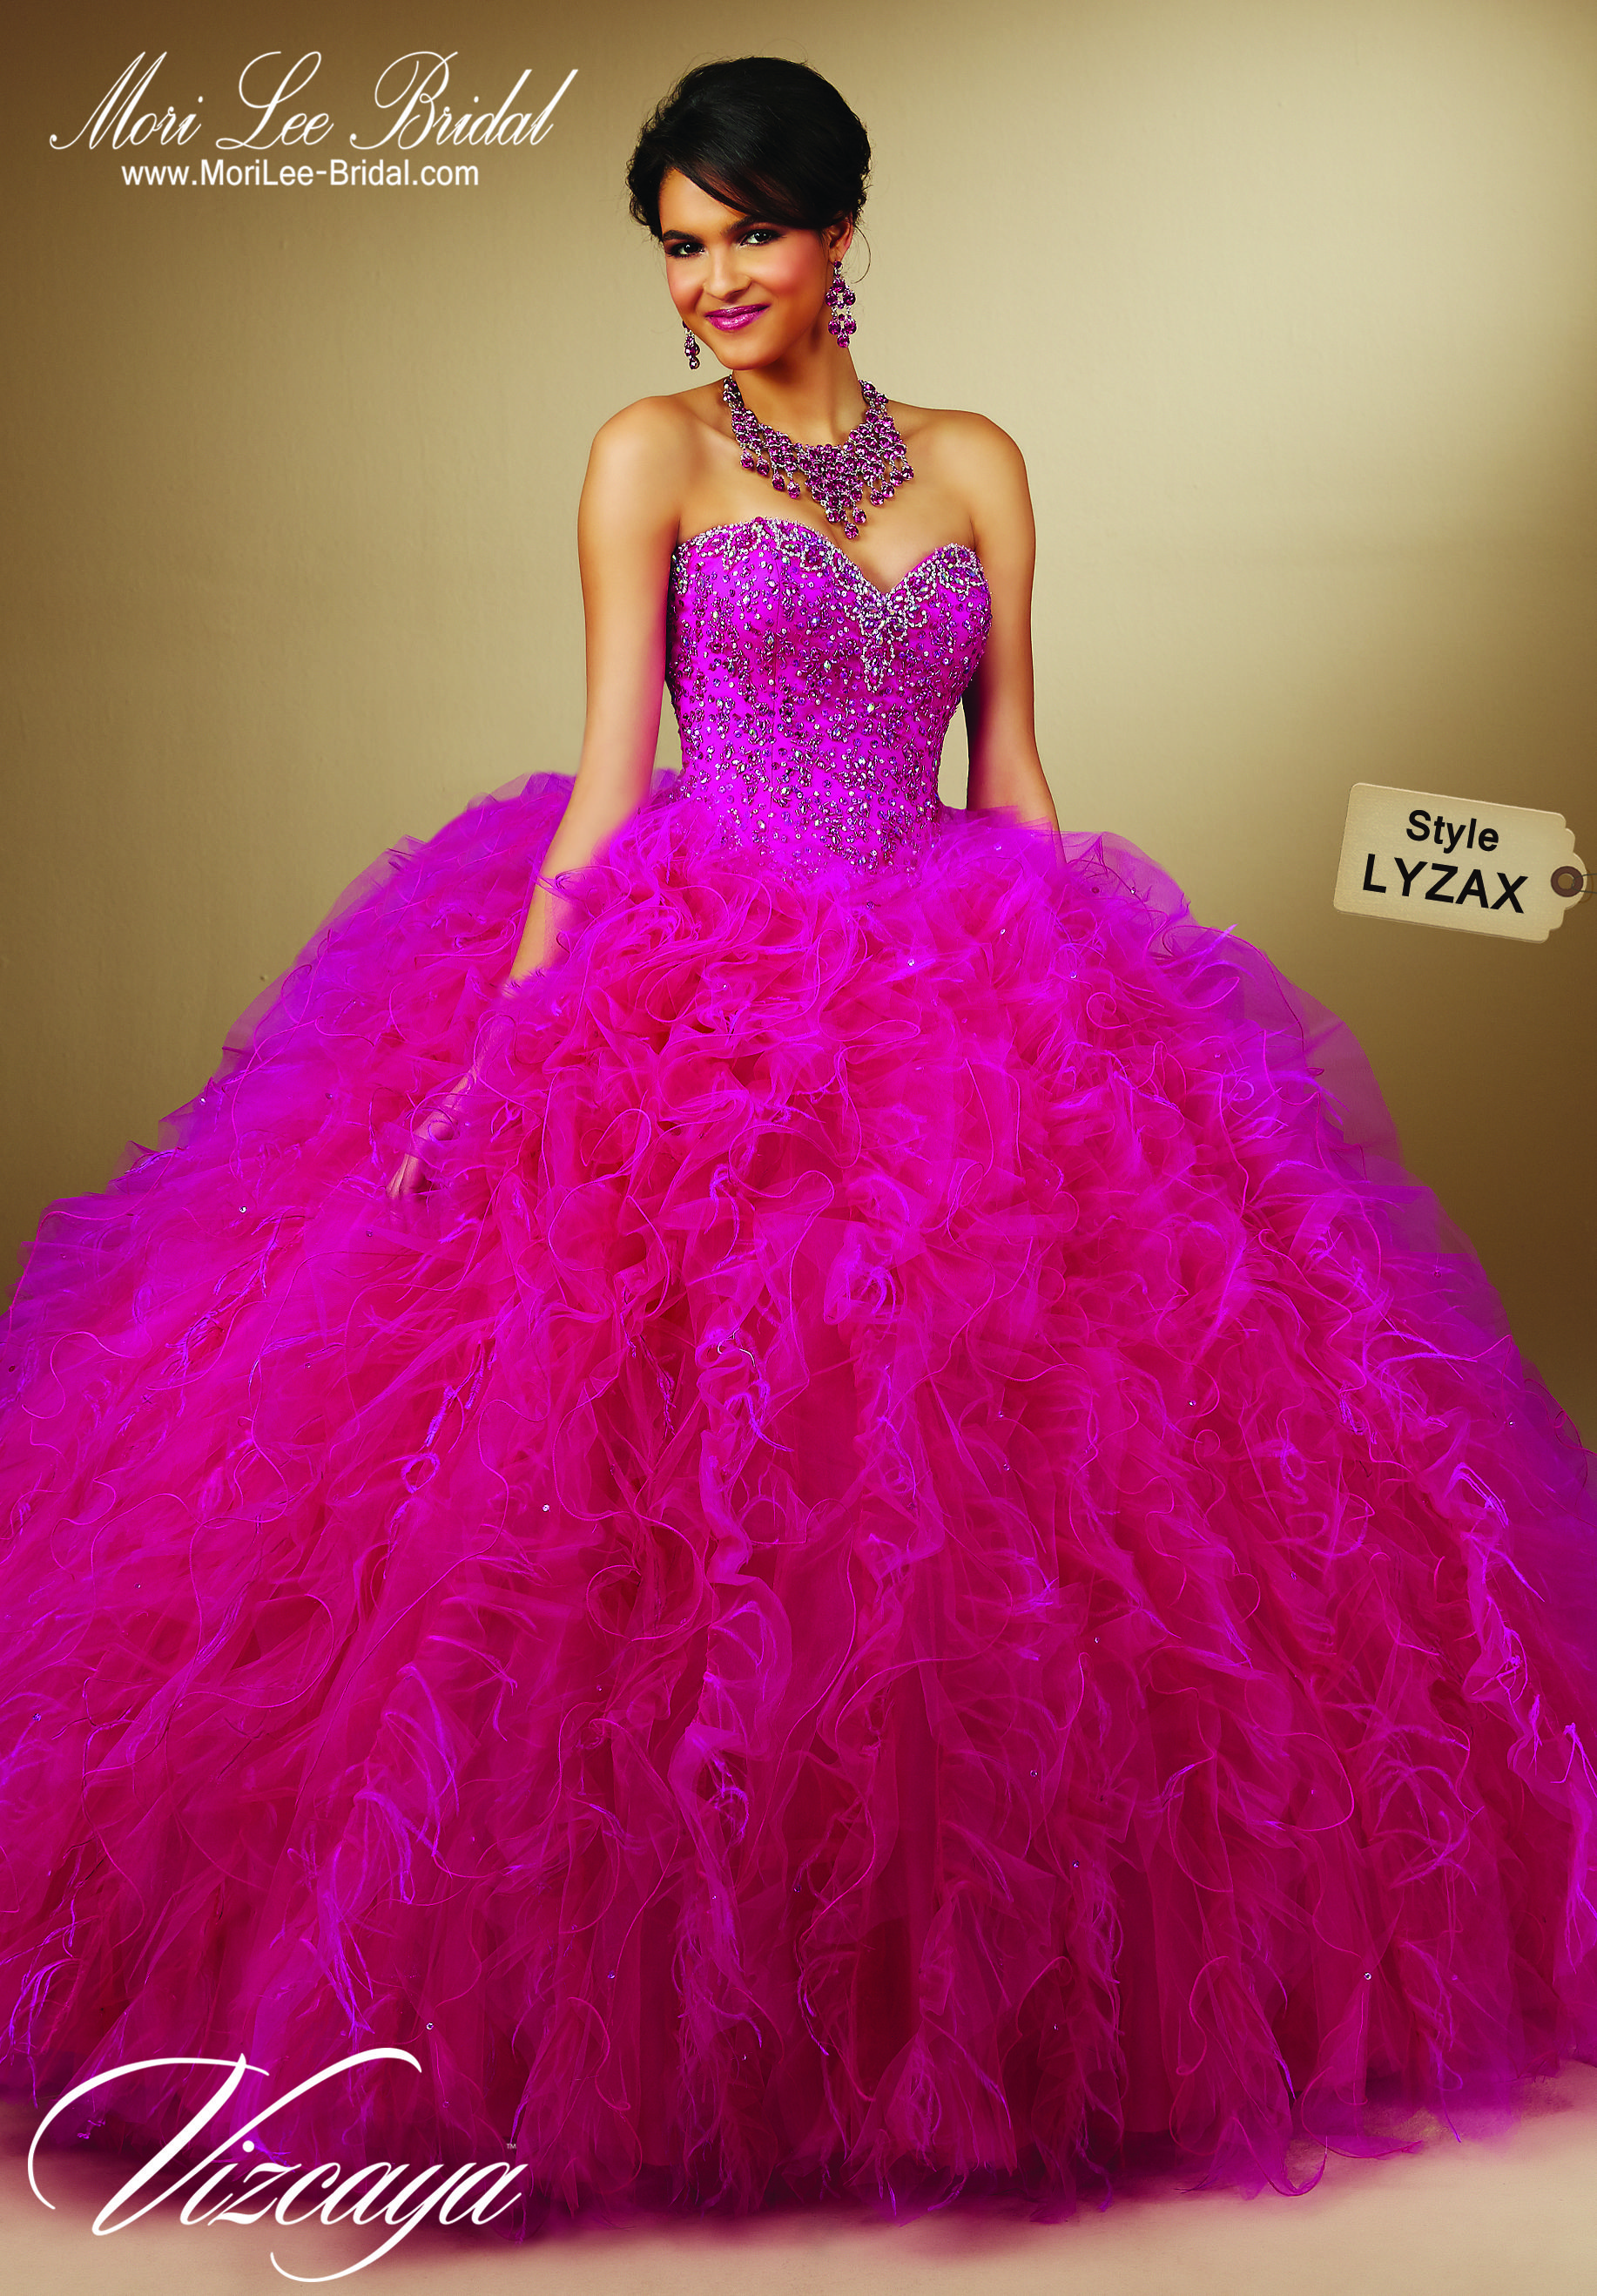 Style LYZAX EMBROIDERY AND BEADING ON RUFFLED TULLE WITH FEATHERS ...